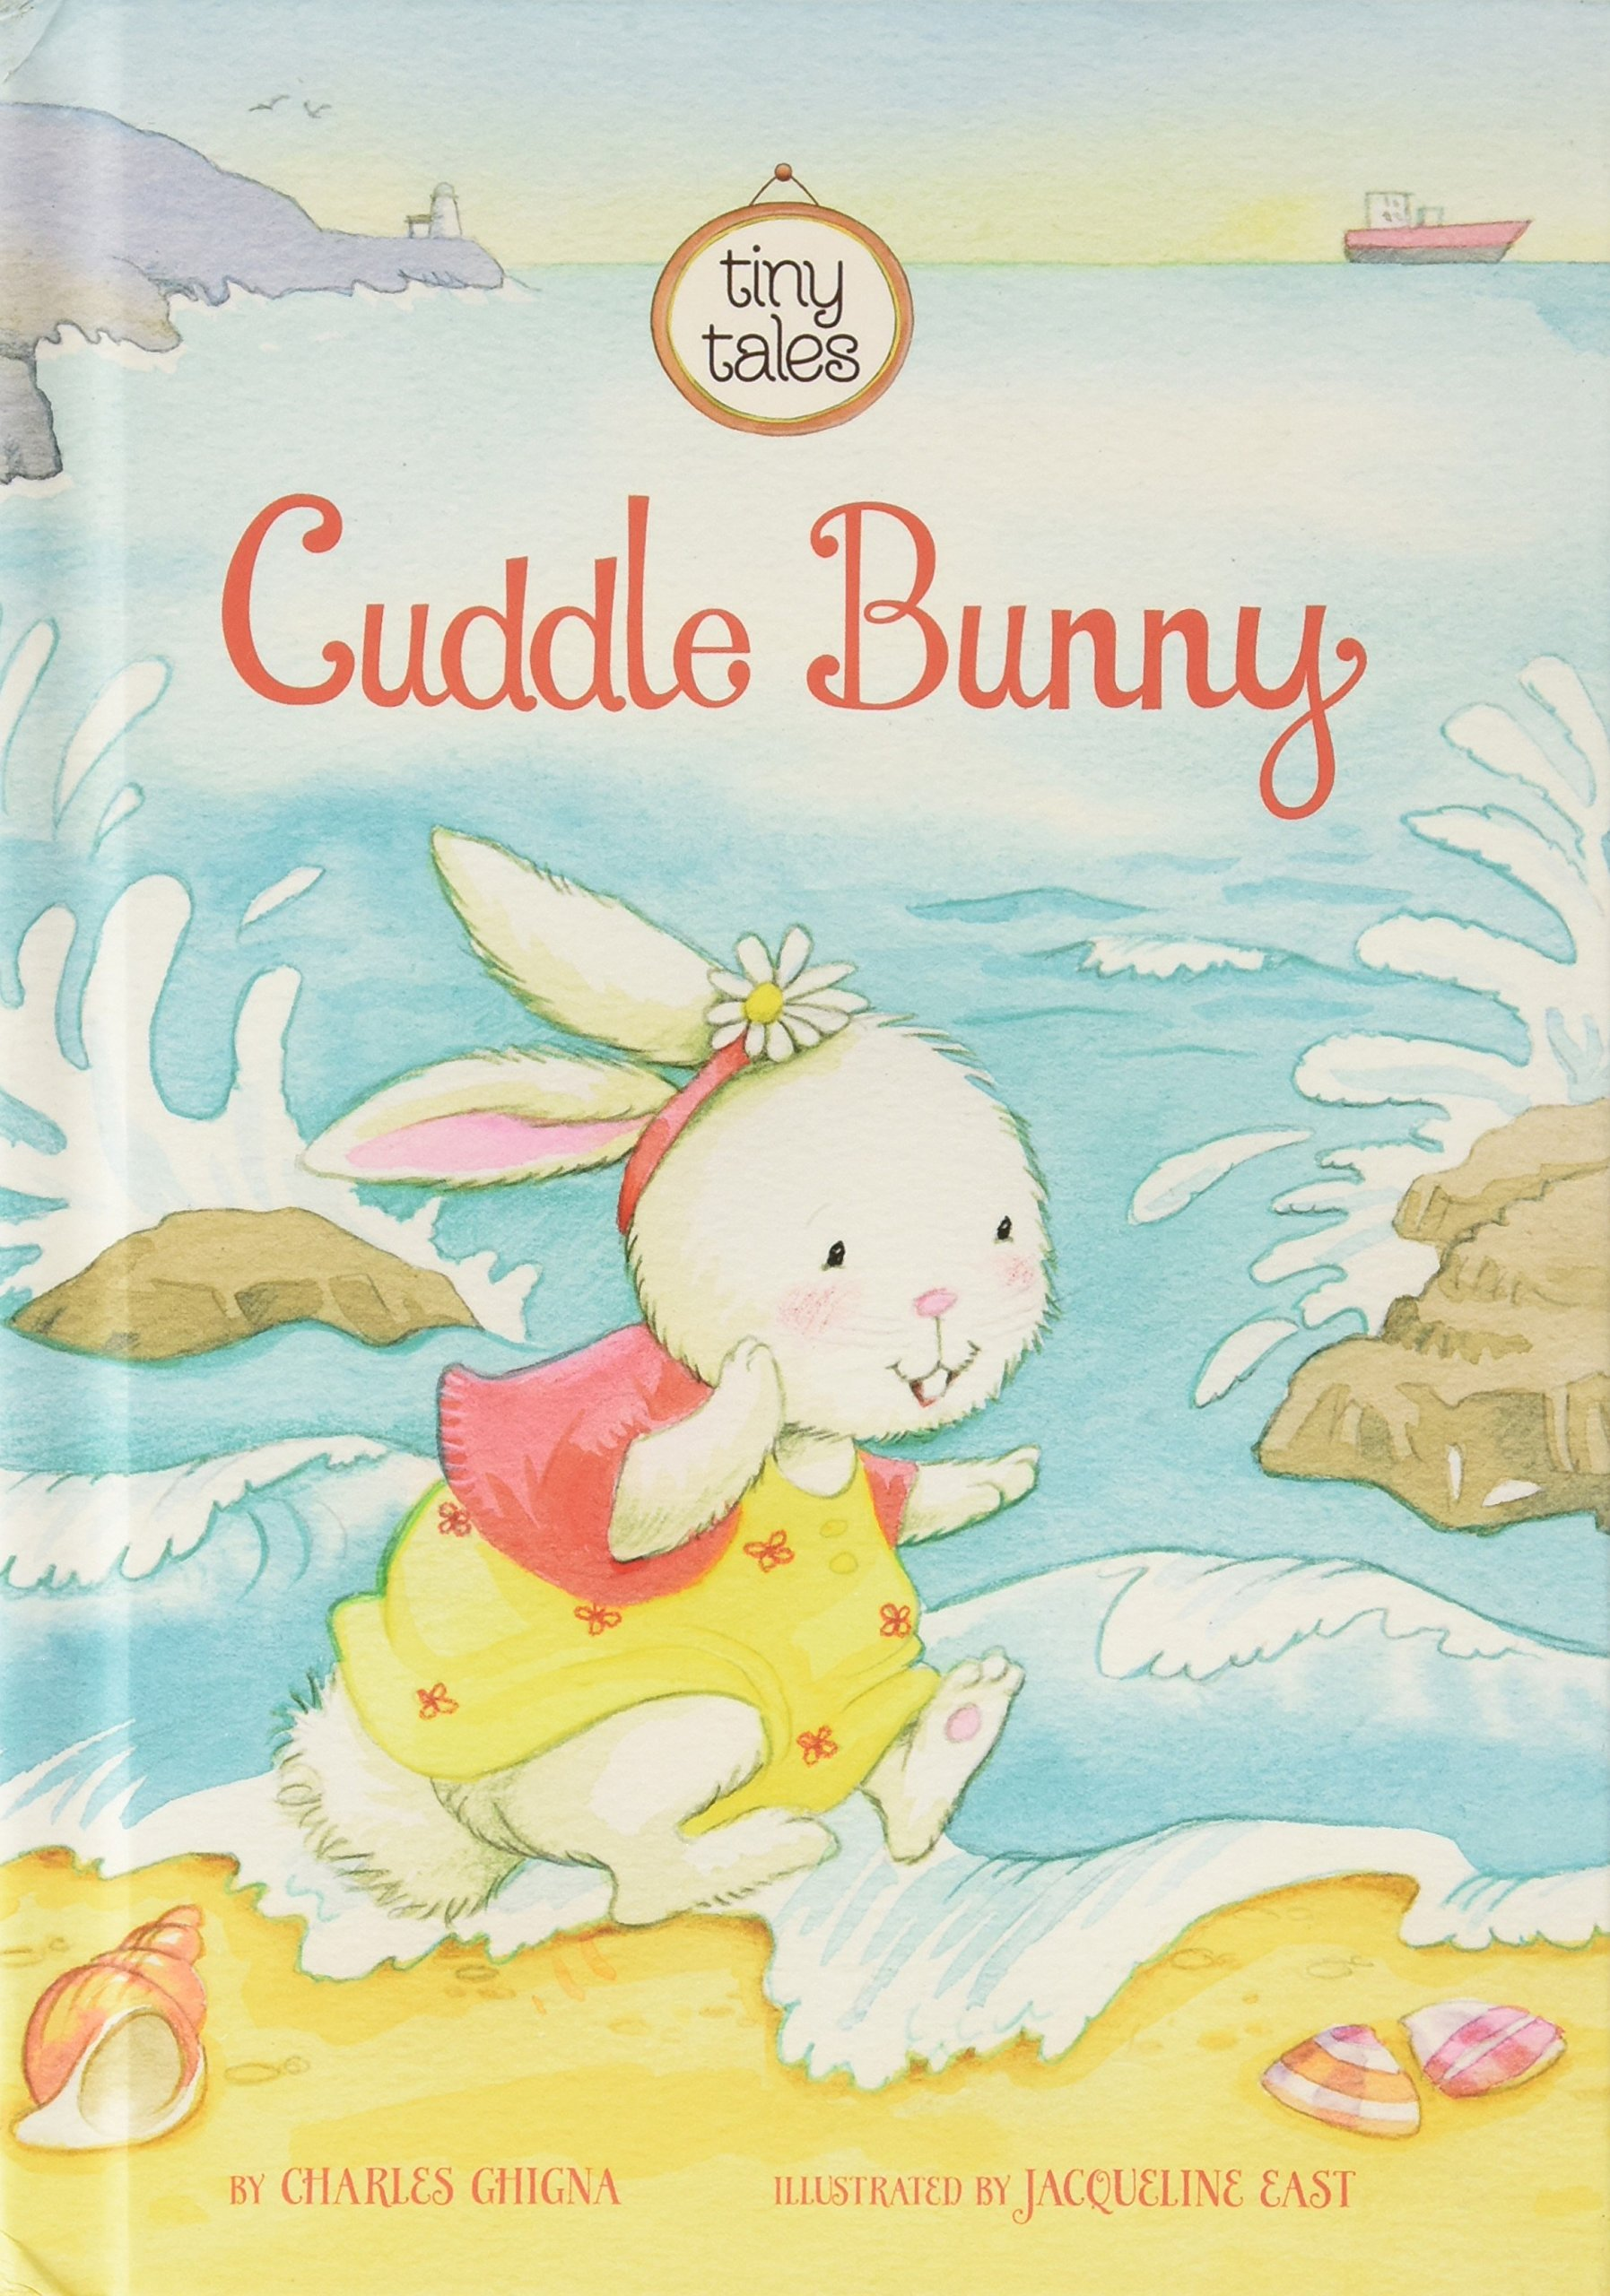 Amazon.com: Cuddle Bunny (Tiny Tales) (9781479565283 ...